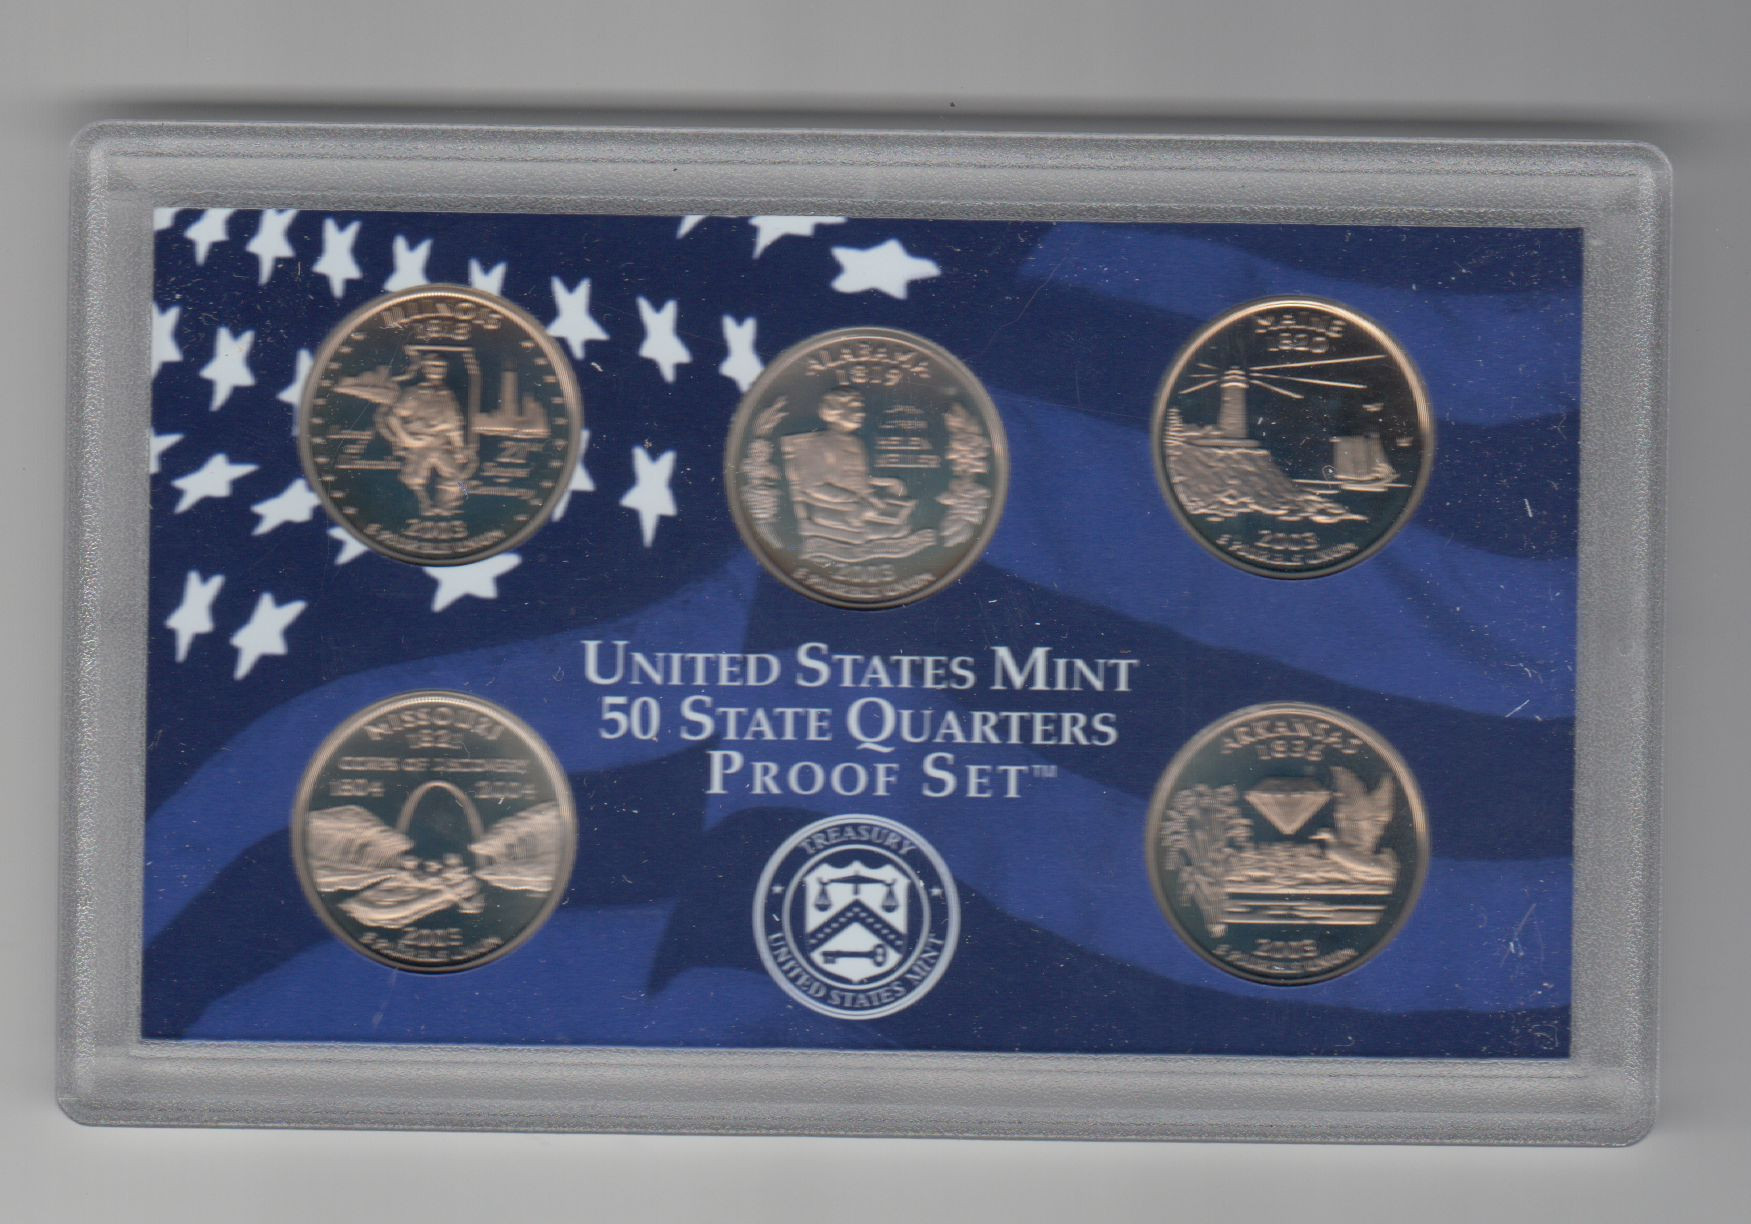 Elegant Value Of 5 Coins 50 State Quarters Proof Set In Box with State Quarter Set Value Of Luxury Mint Statehood Quarter Errors State Quarter Set Value